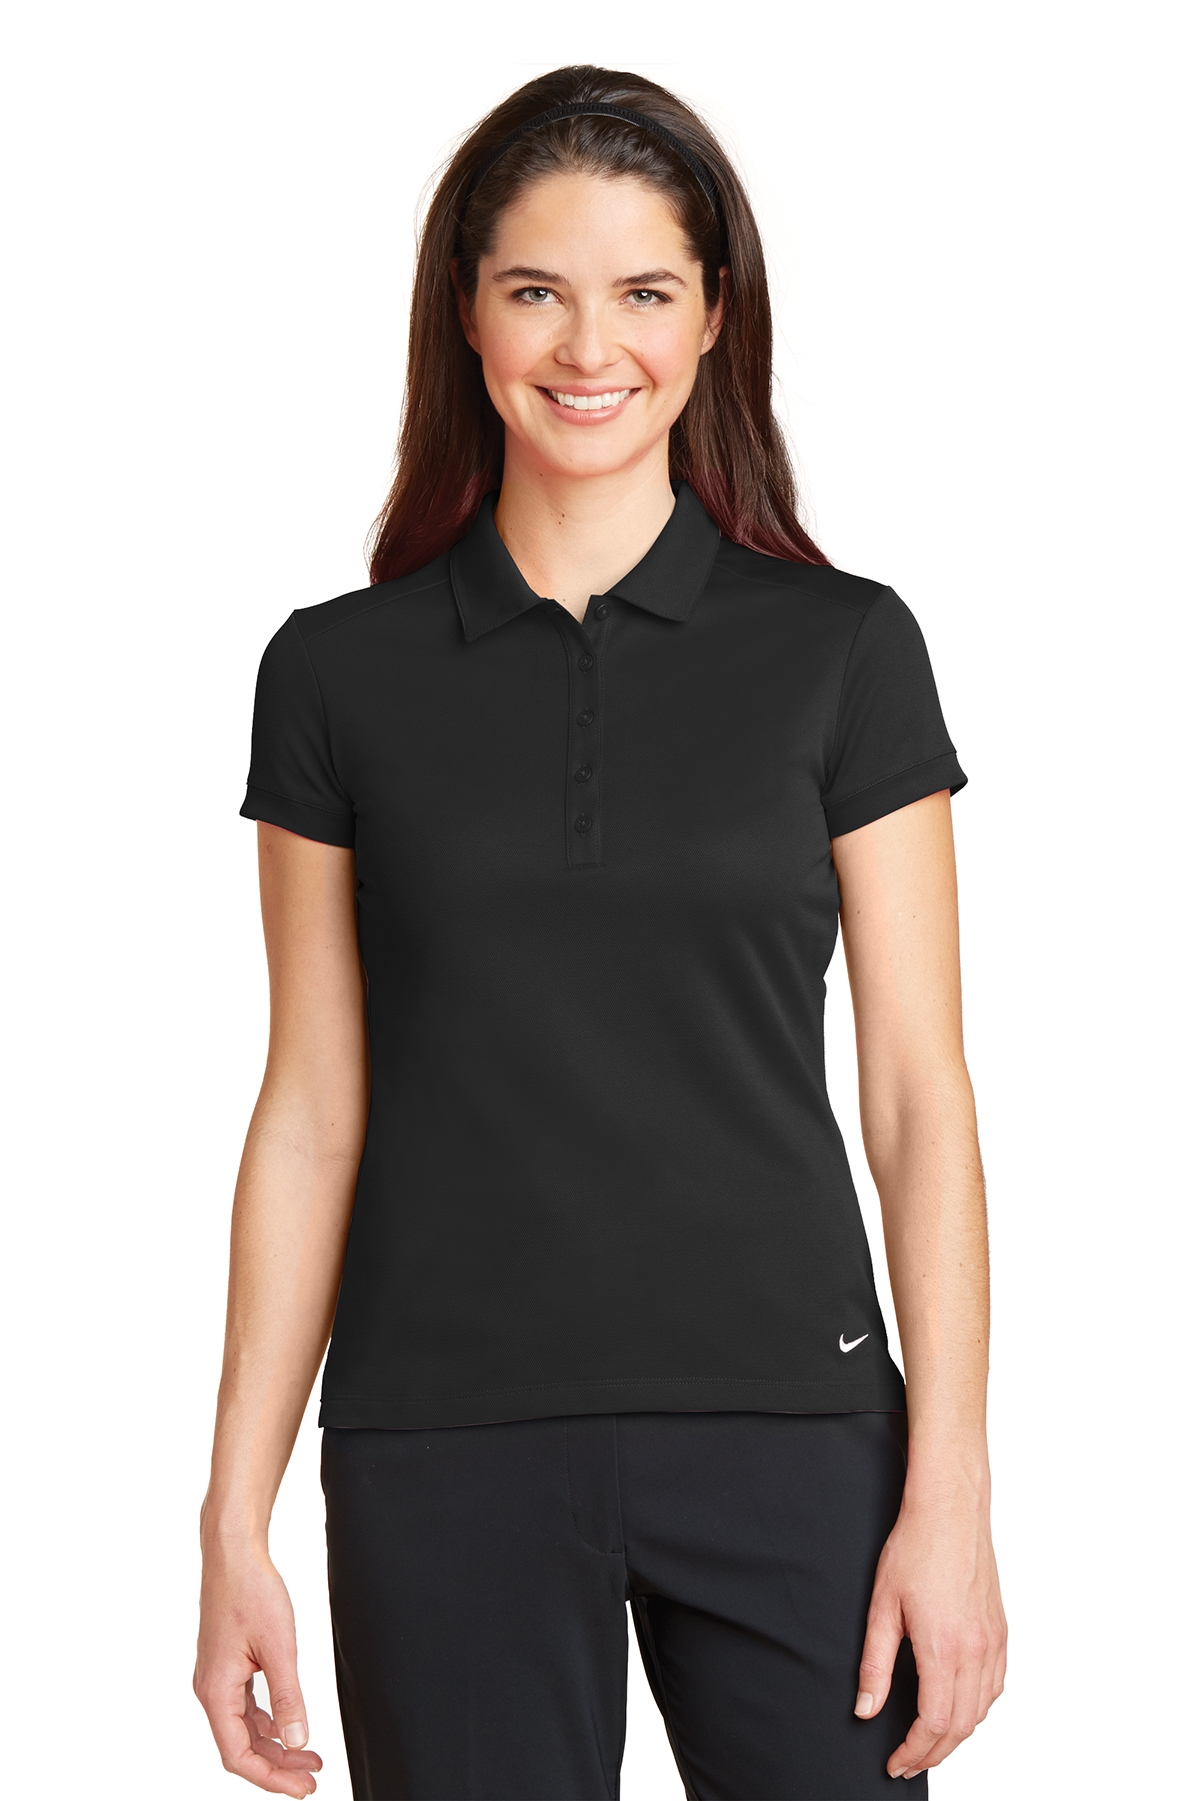 LH746100-SPG-Nike Ladies Dri-FIT Micro Pique Polo